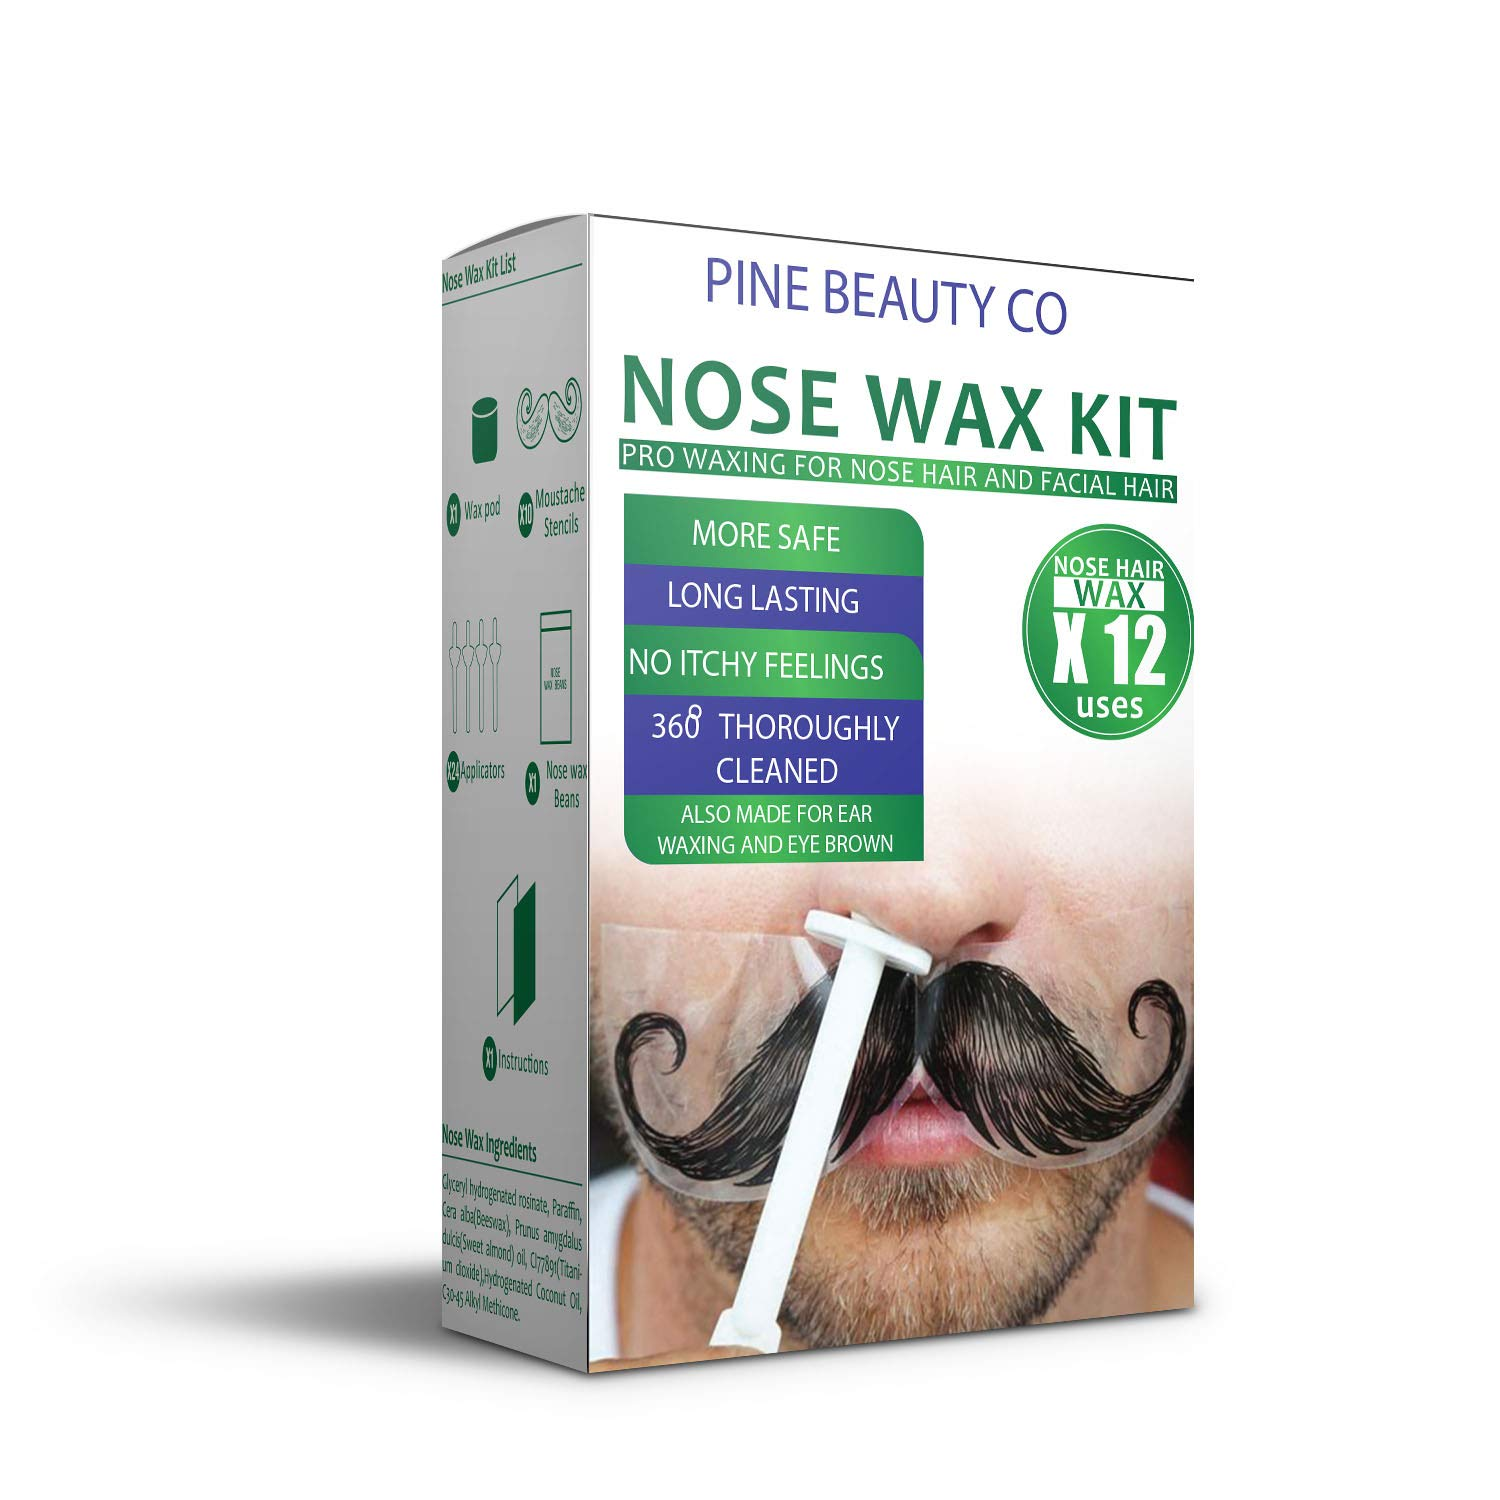 Nose Wax Kit for Men and Women, Hair Removal Waxing Kit for Nose, Ear and Eye-brow Hair Removal with Safe Tip 24 Applicator, Quick, Easy and Painless (80g/ 12 Times Uses Count) by PINE BEAUTY CO